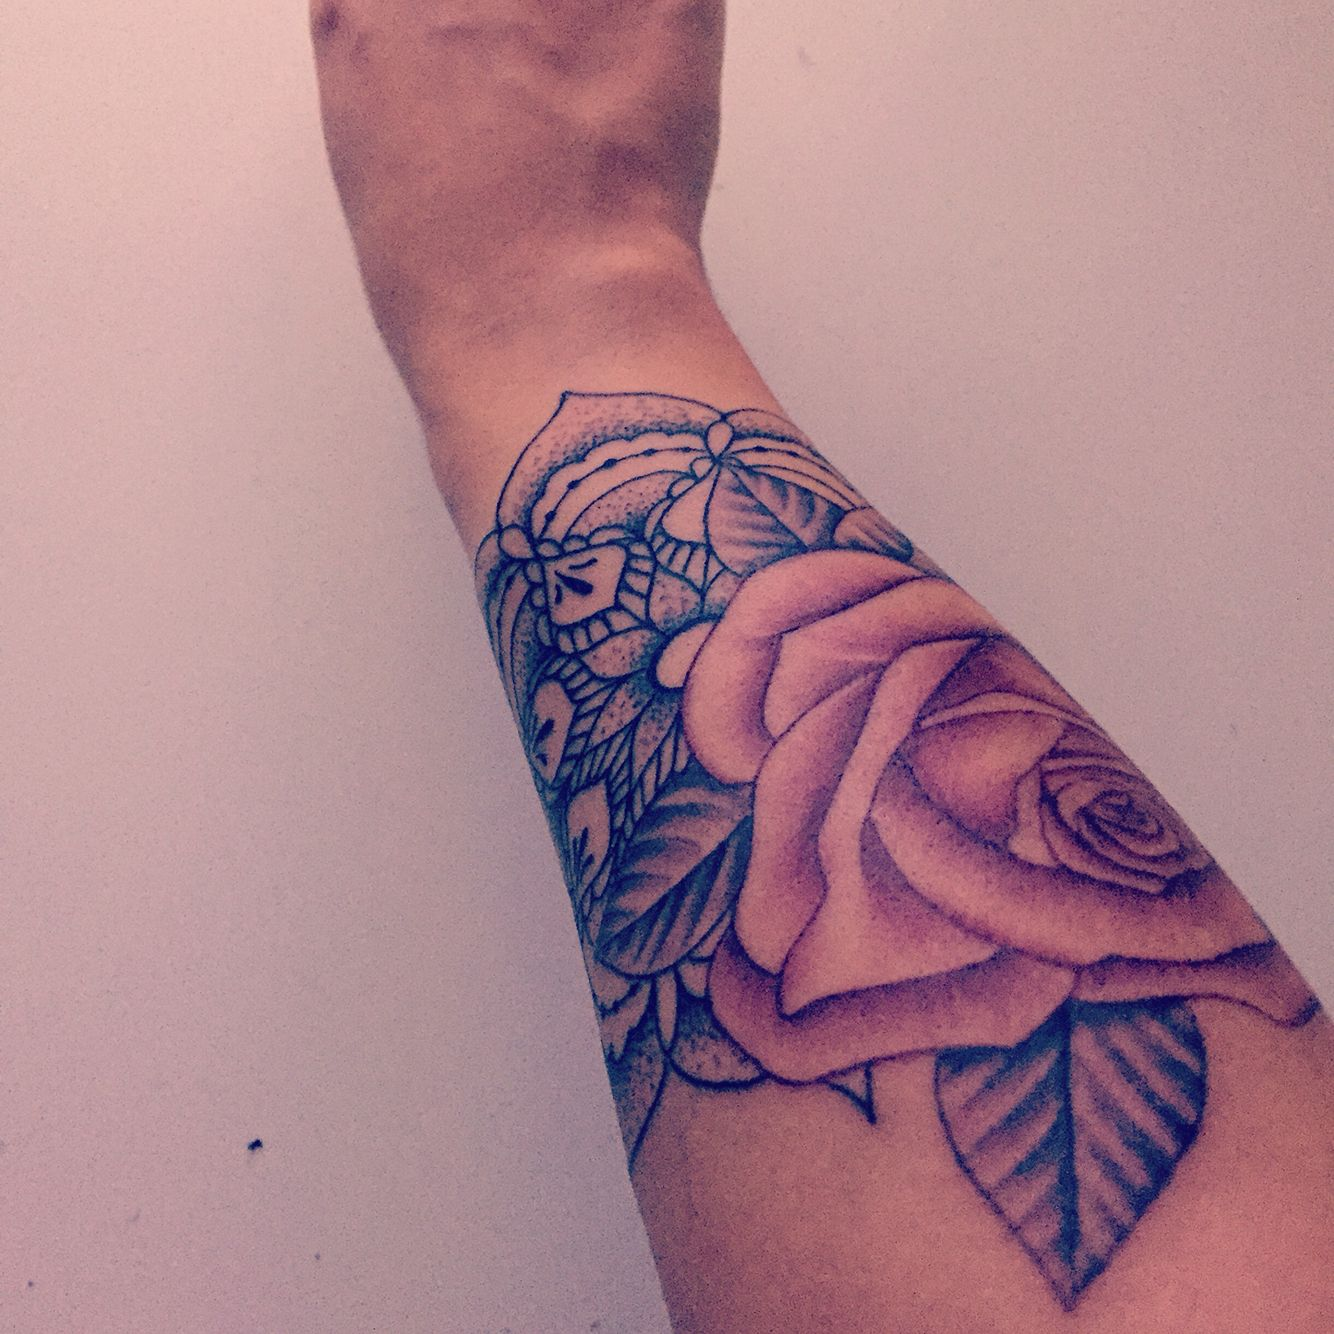 Tatouage Mandala Et Rose Poignet Tattoos That I Love Tattoos